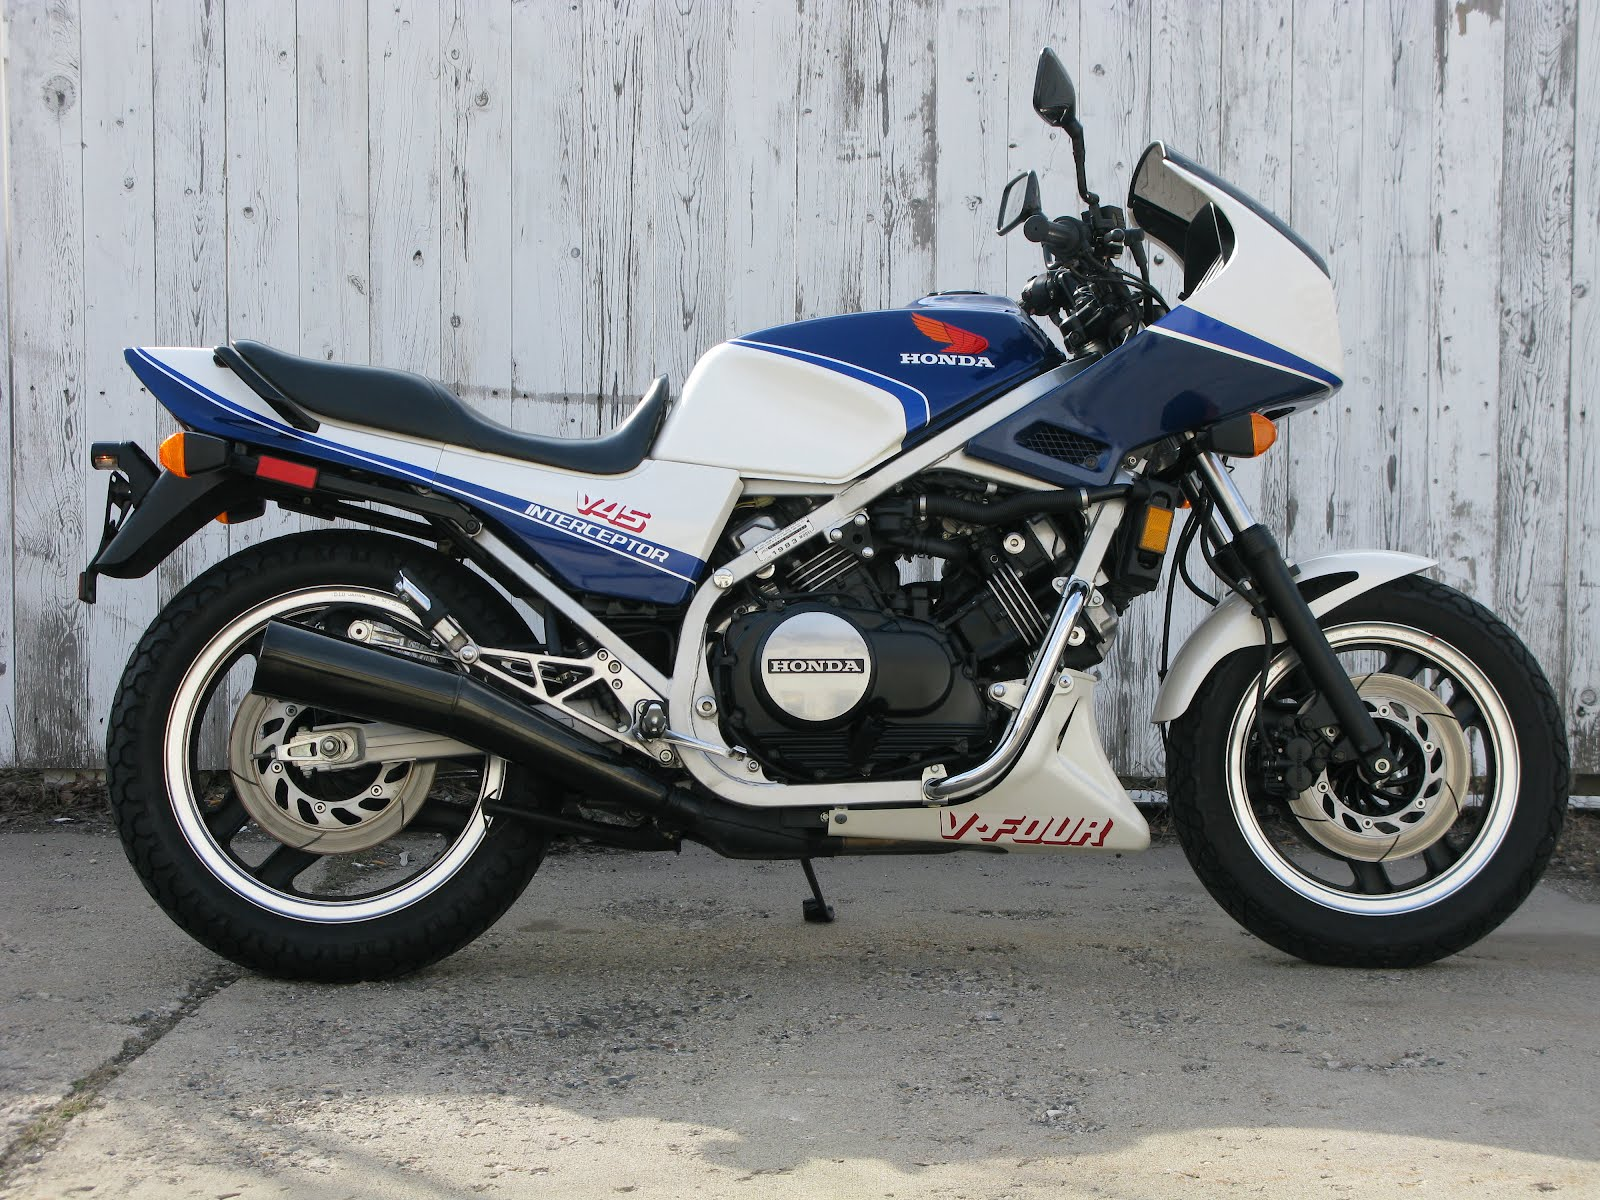 1985 Honda Shadow Vt700 166207 further Watch together with Kilian together with 481181541407050681 likewise Watch. on 85 honda magna